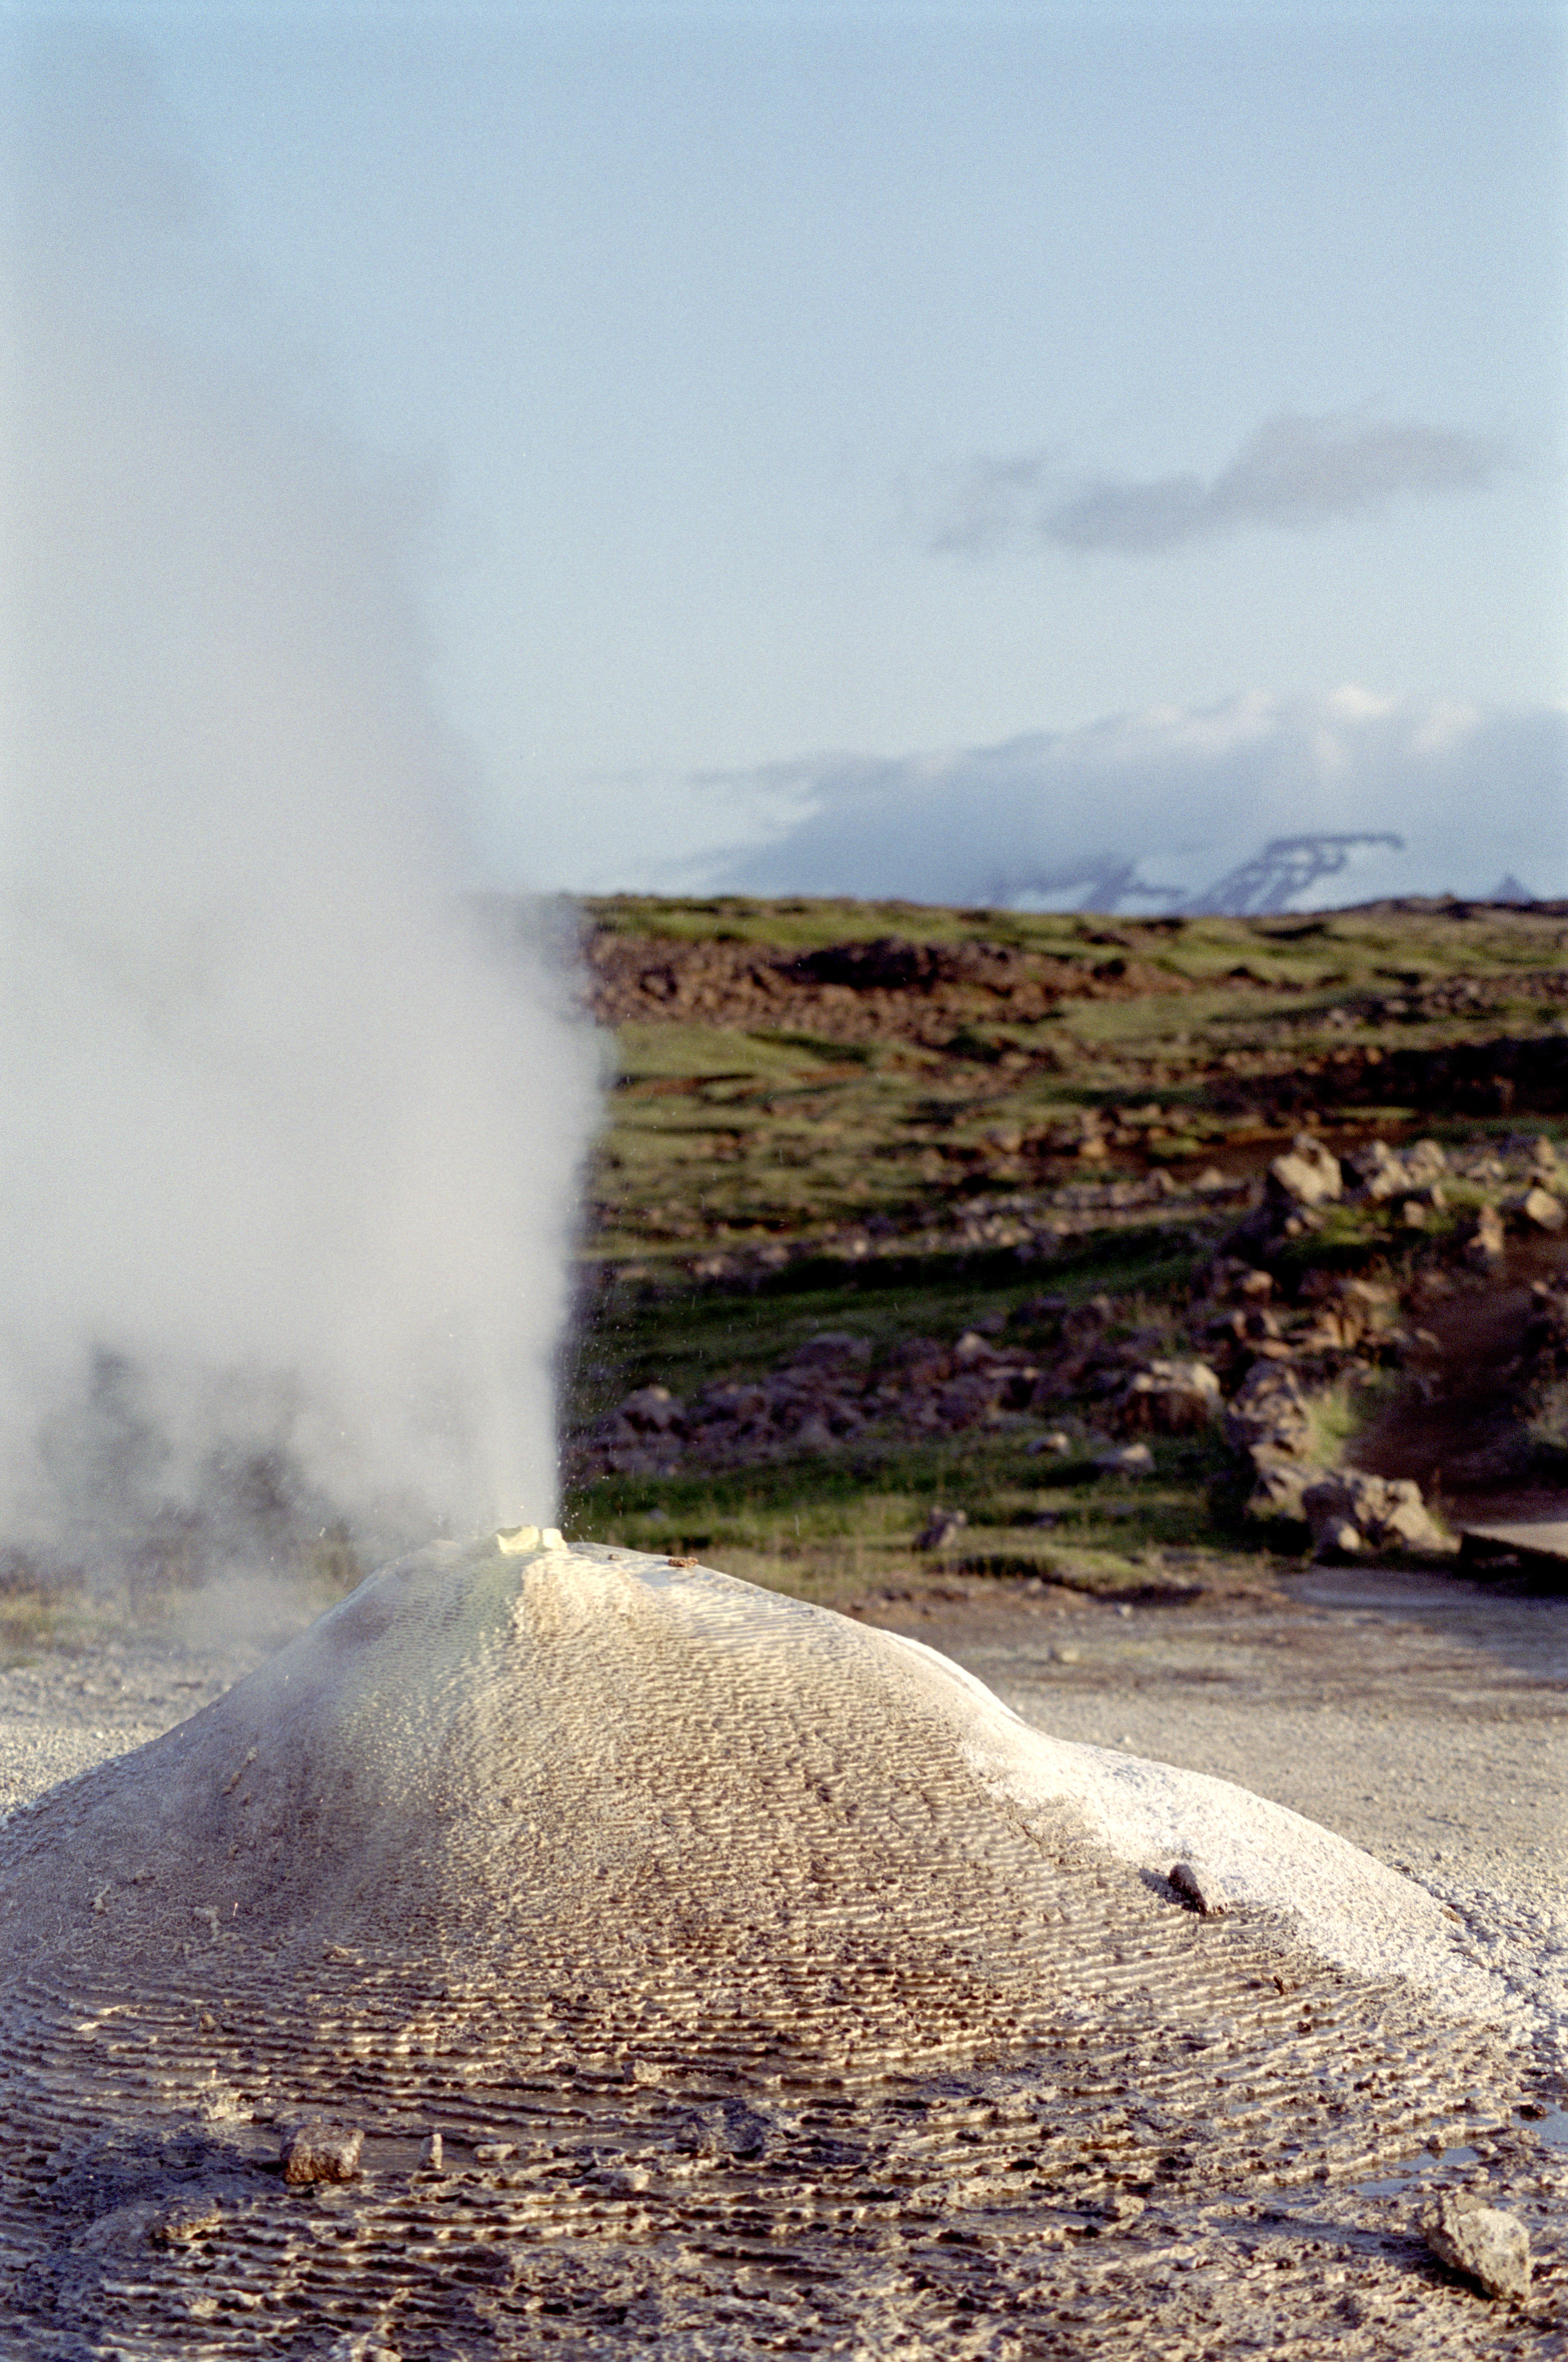 Steam ejecting from the top of a mound around the mouth of a geyser, a natural hot spring that releases pressure by releasing a column of water and steam